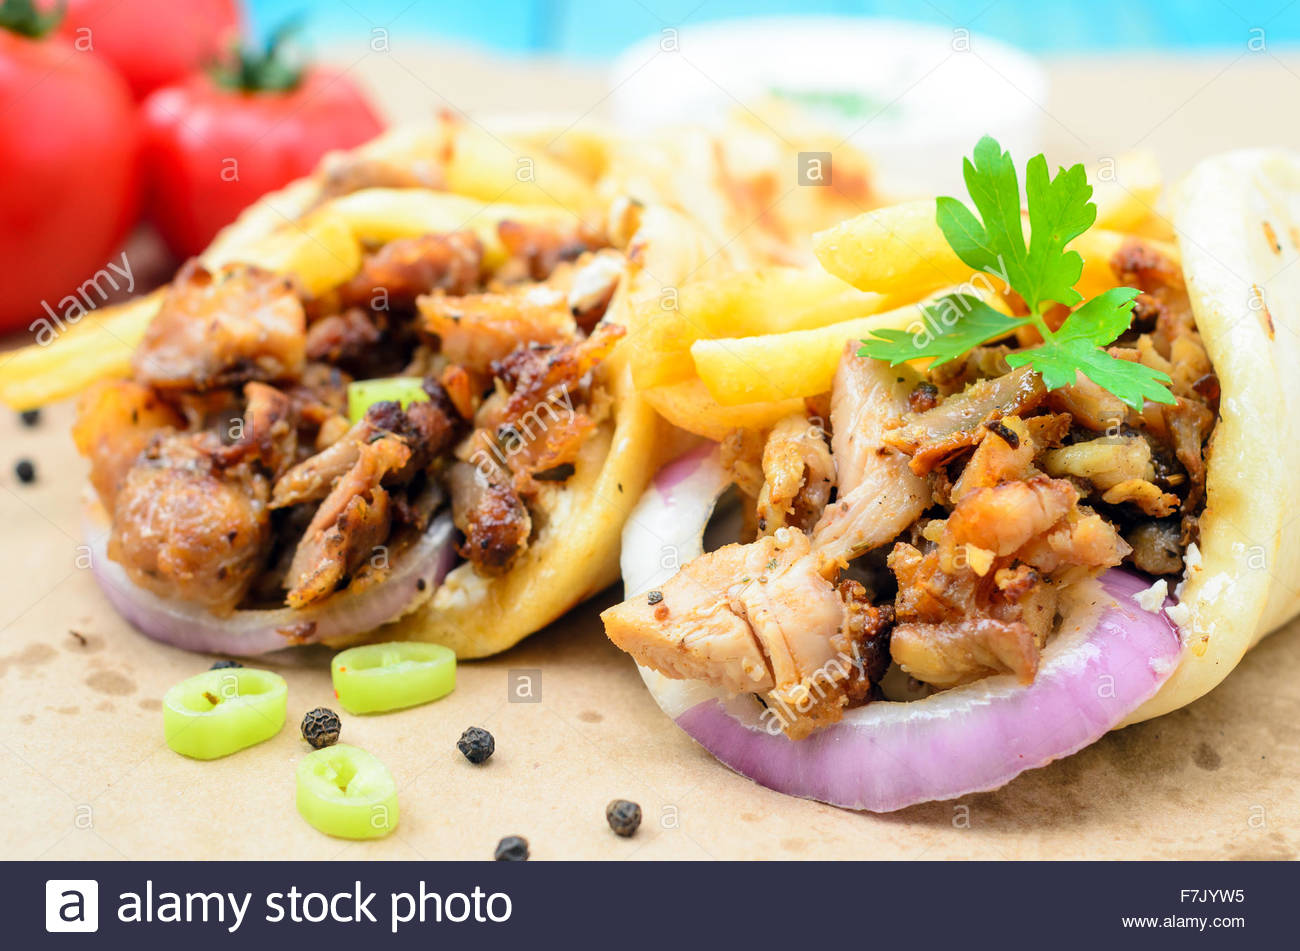 Stock Photo Traditiona Greek Pita Gyros With Meat Fried Potatoes Tomato Onion And Drink On Brown Paper Placed On Blue Wooden Table